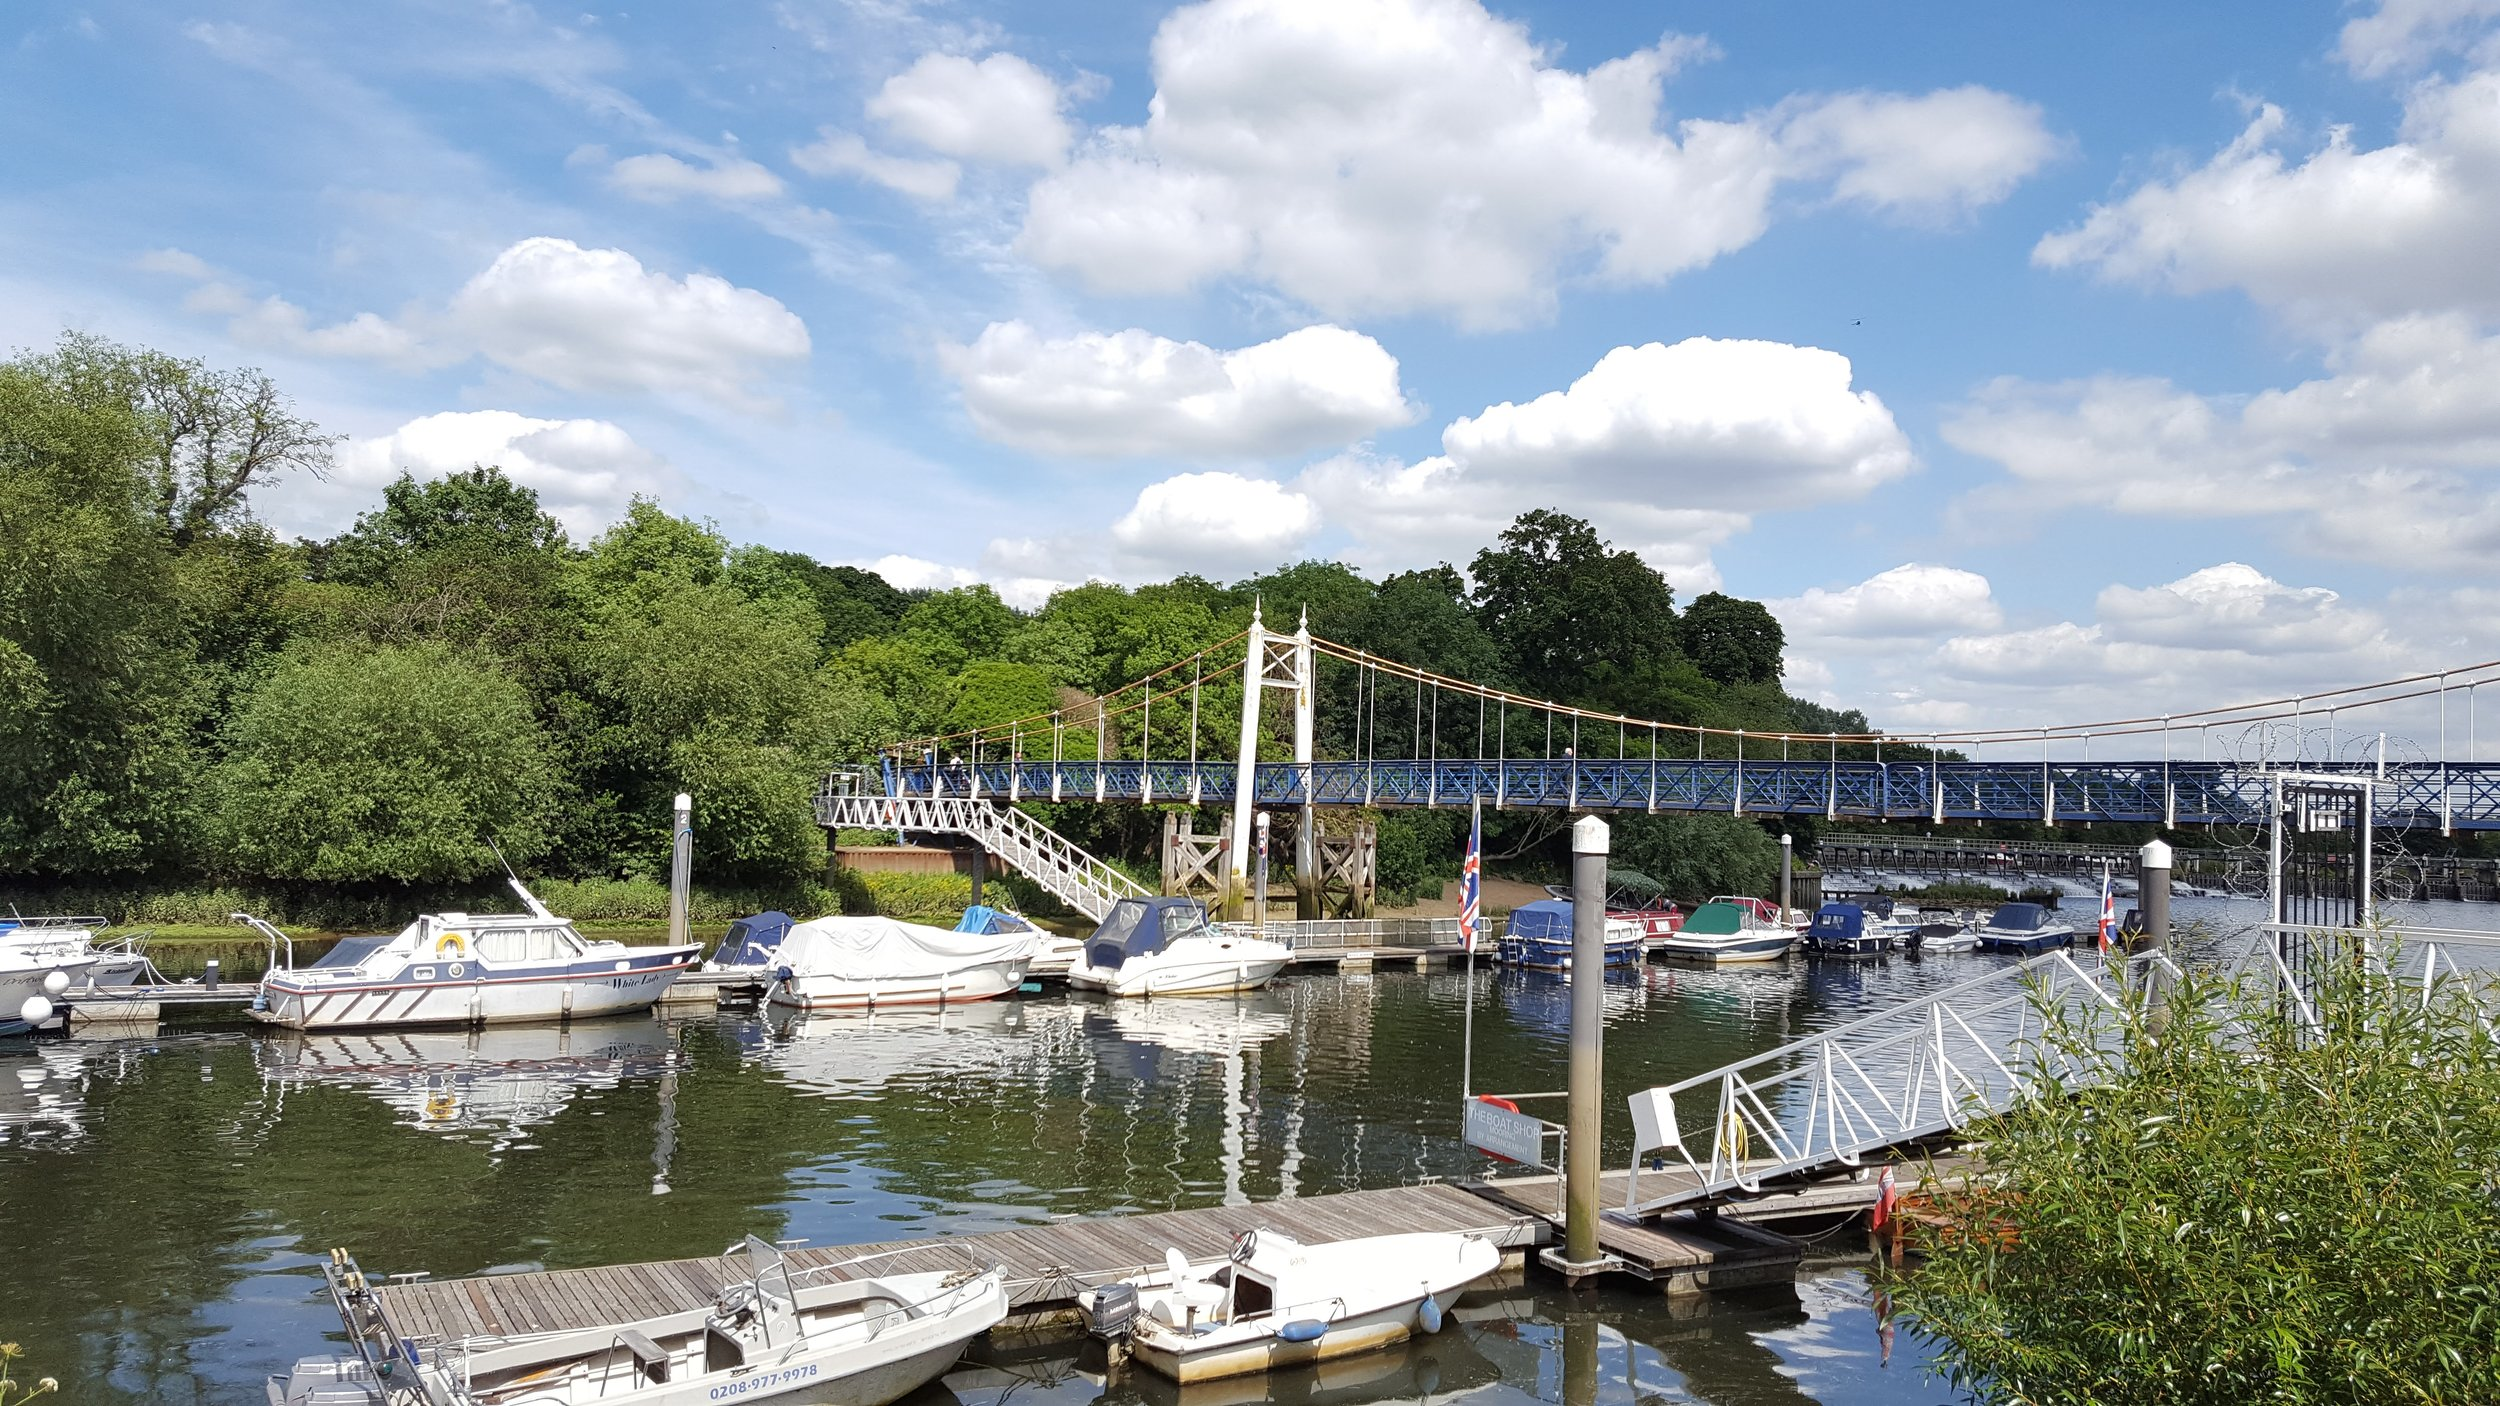 View of Teddington Lock Bridge from the Flying Cloud cafe terrace